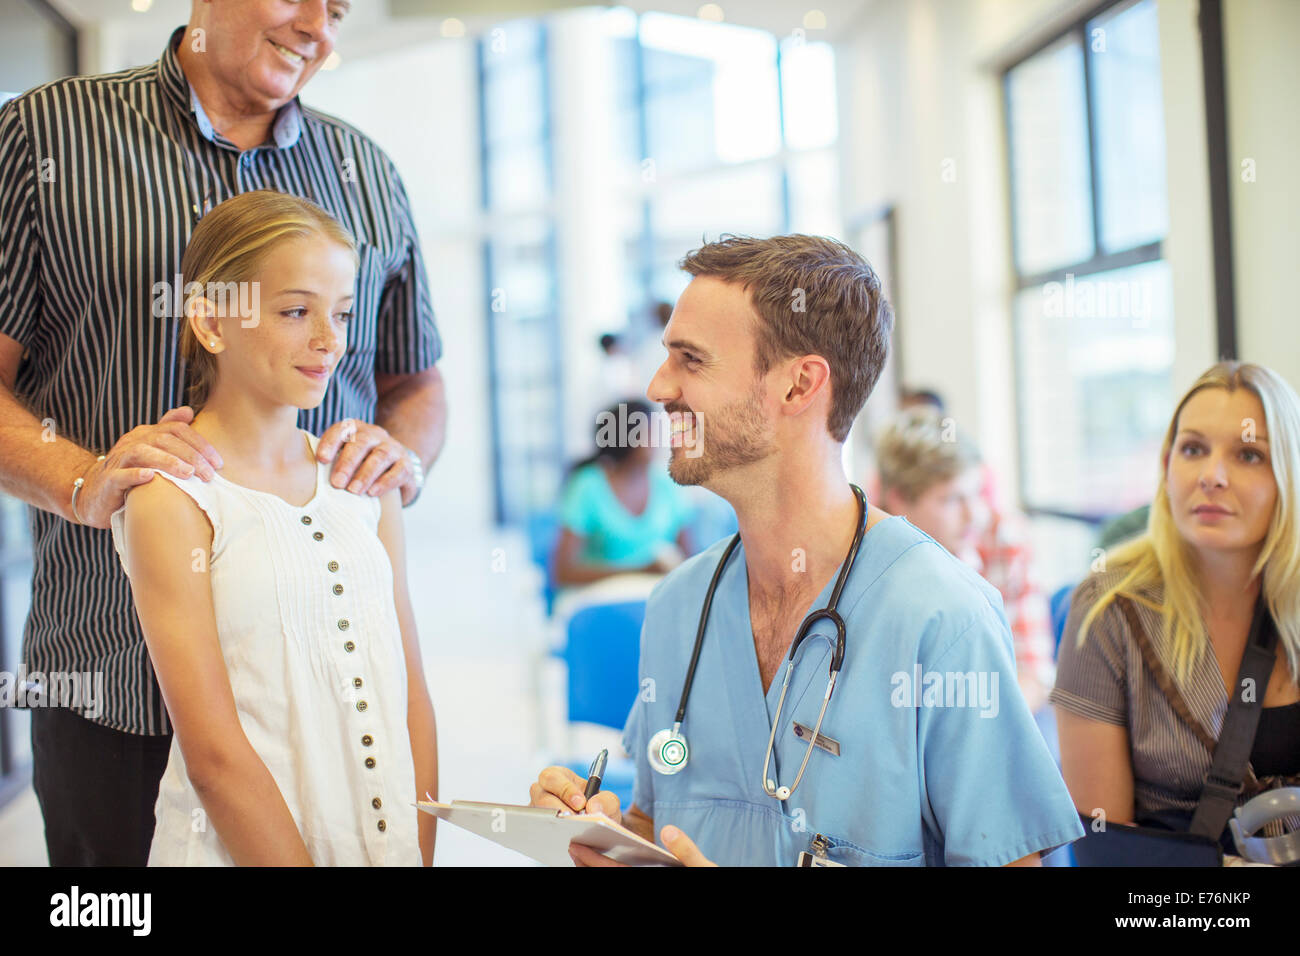 Nurse talking to patient in hospital - Stock Image